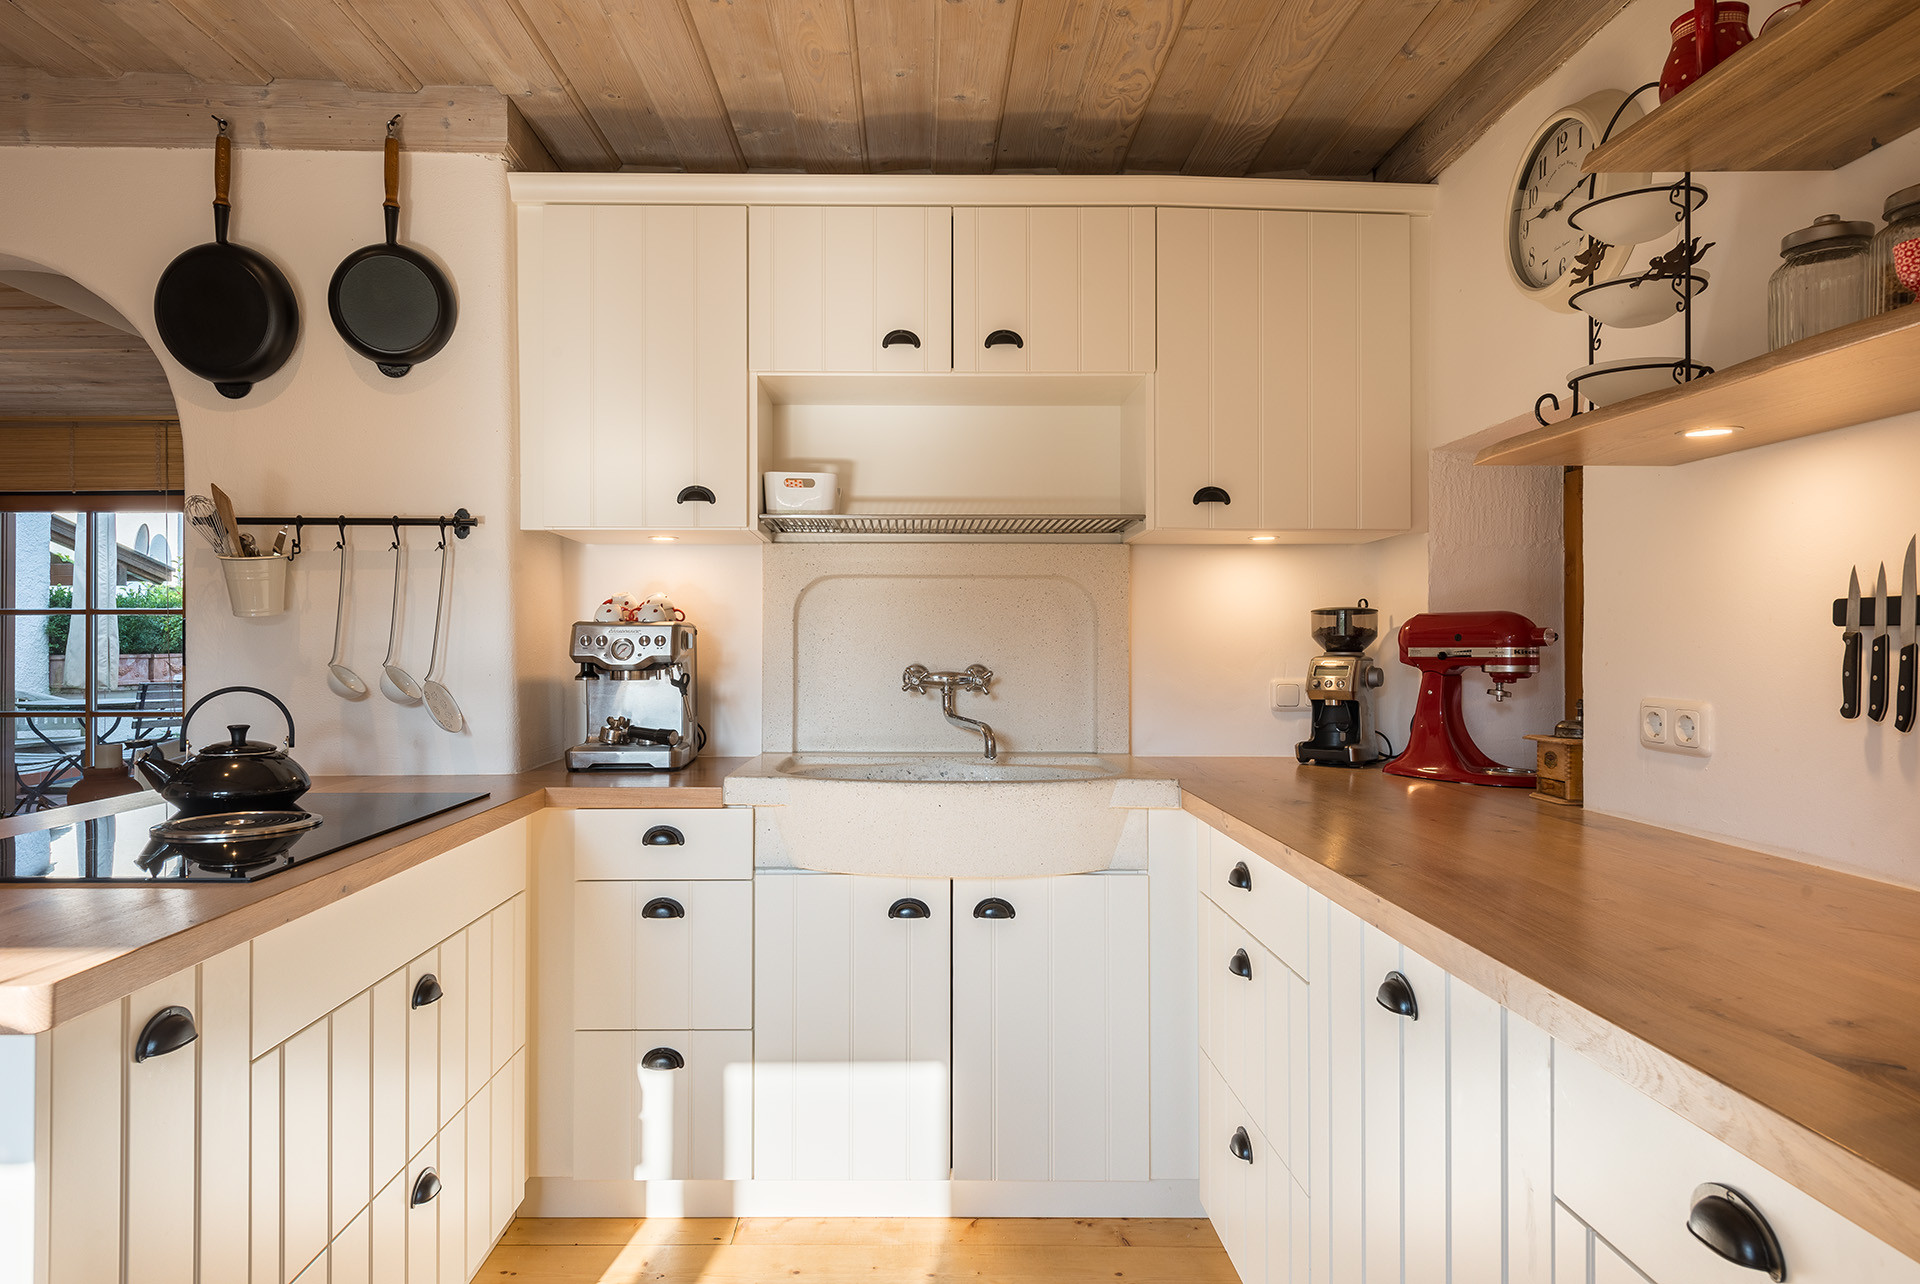 75 Beautiful Small Kitchen With Louvered Cabinets Pictures Ideas November 2020 Houzz